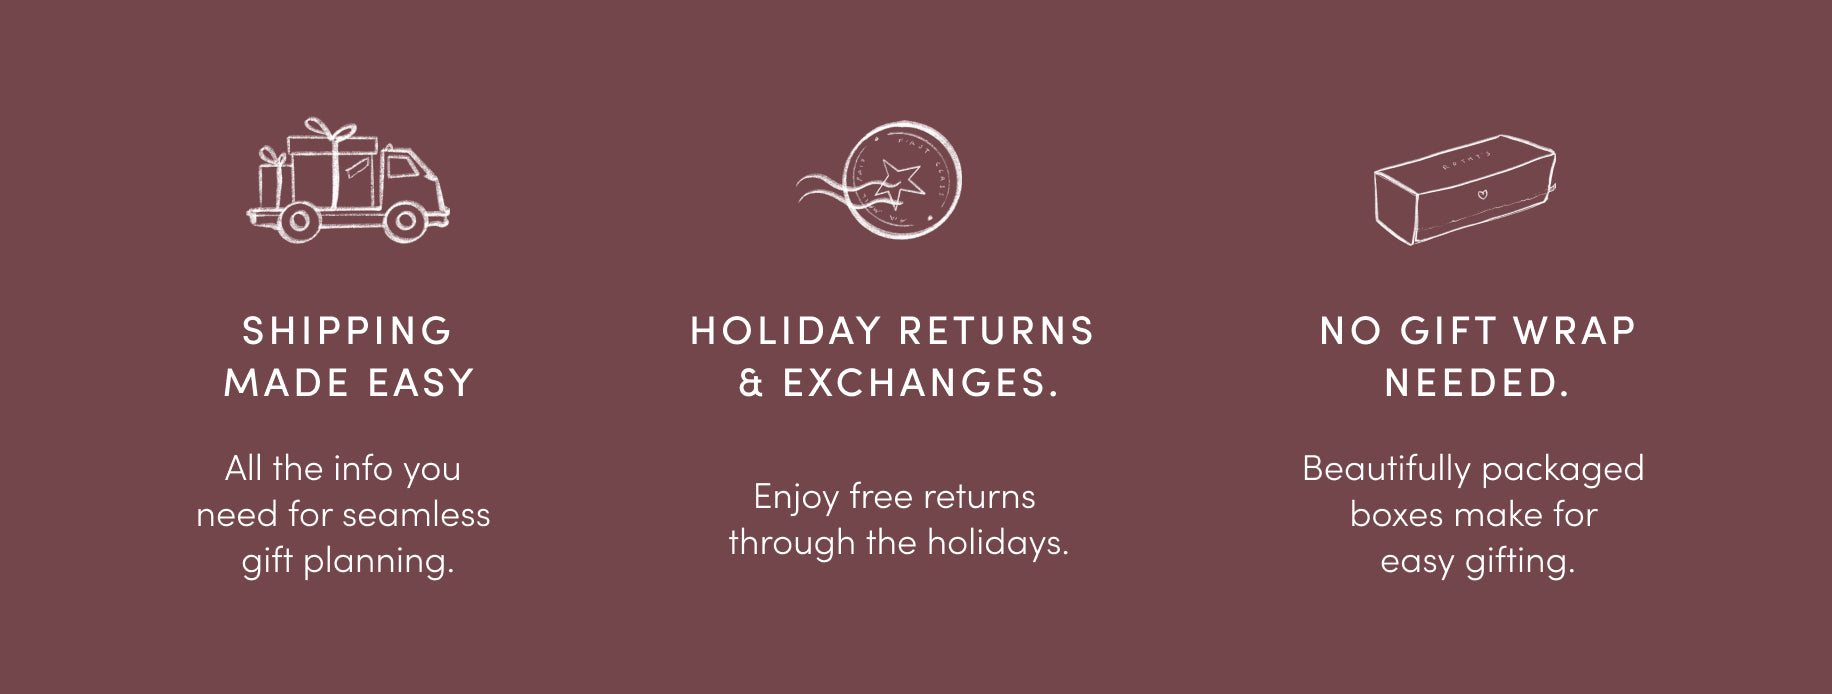 Image with text advertising easy shipping, holidays returns and exchanges, and beautiful packaging.